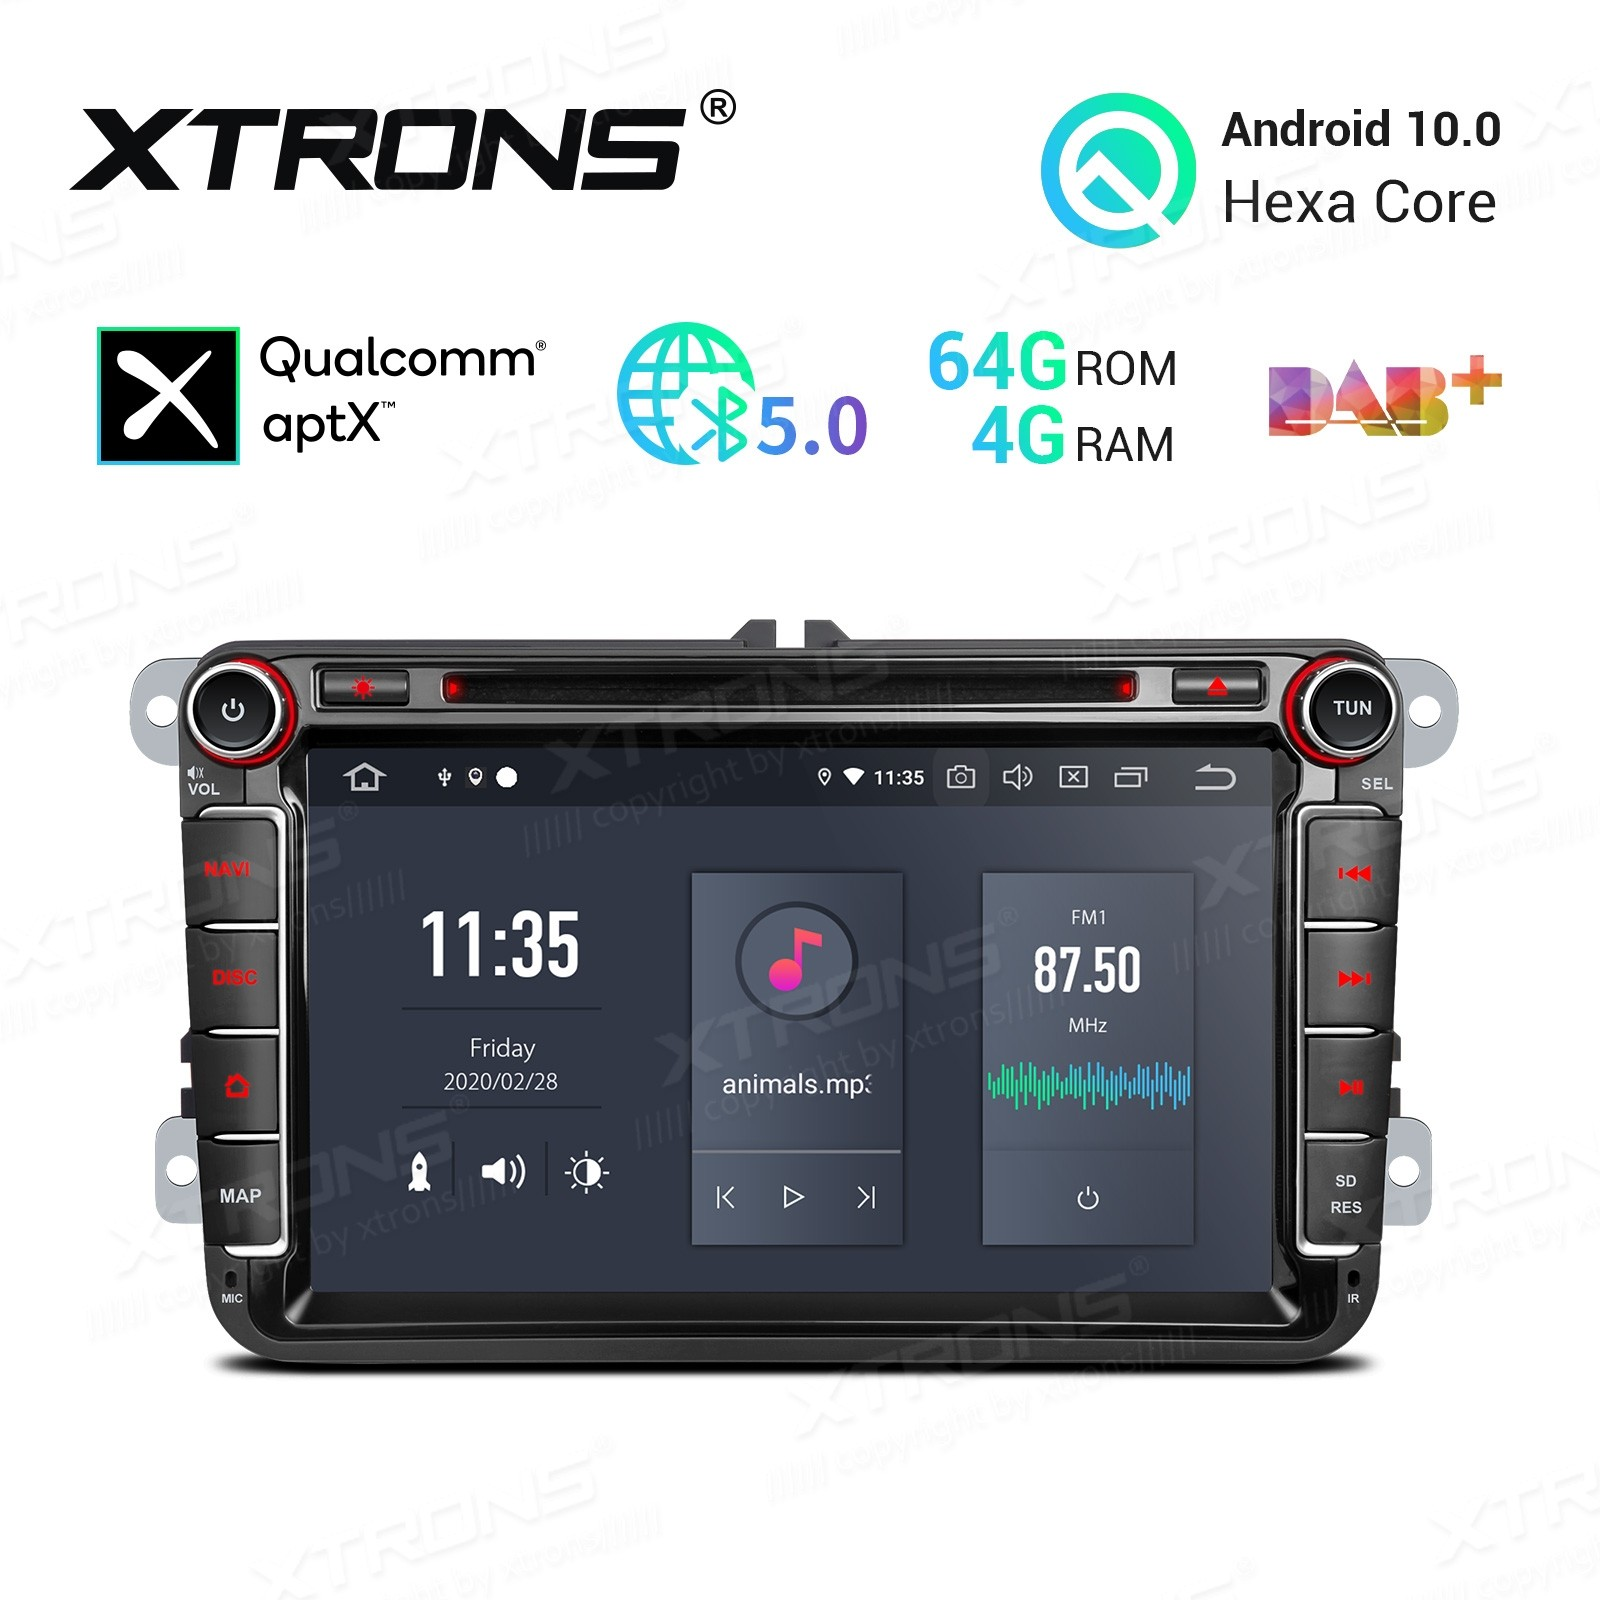 8 inch Android 10.0 Hexa Core 64GB ROM + 4GB RAM Car DVD Receiver Navigation System with HDMI Output Custom Fit for VW/Skoda/Seat